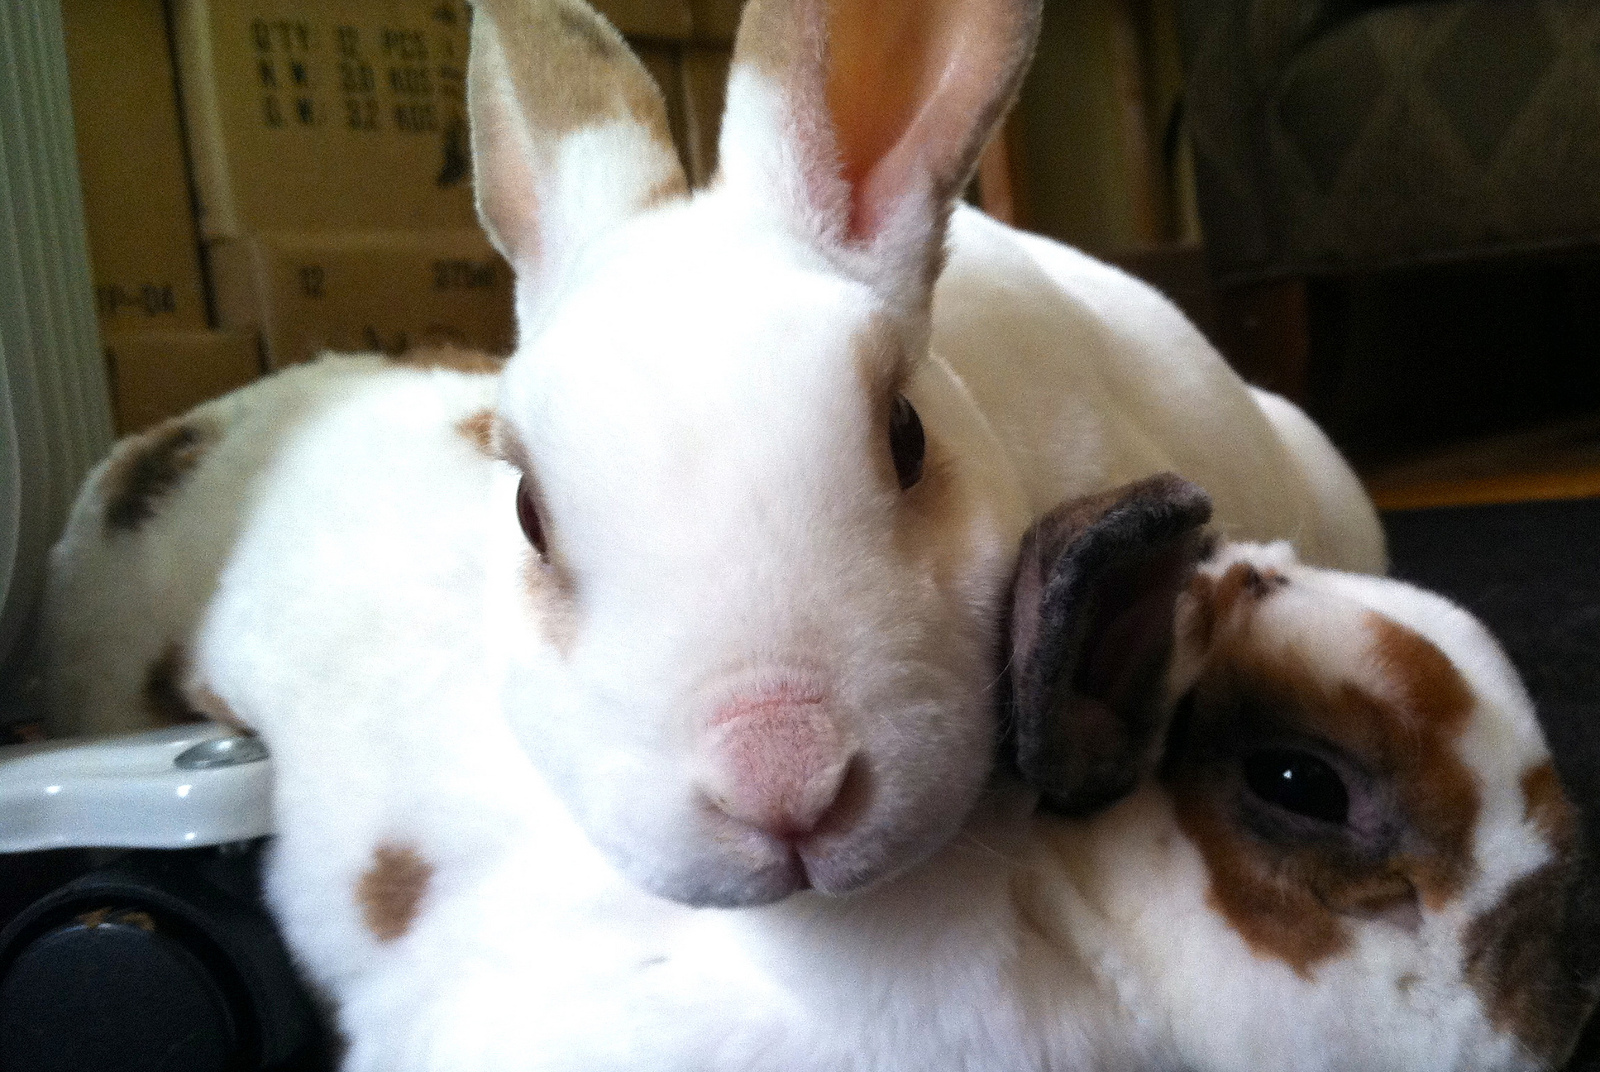 Woohoo! Act That Could Ban Cosmetic Testing on Animals in the U.S. One Step Closer to Reality!